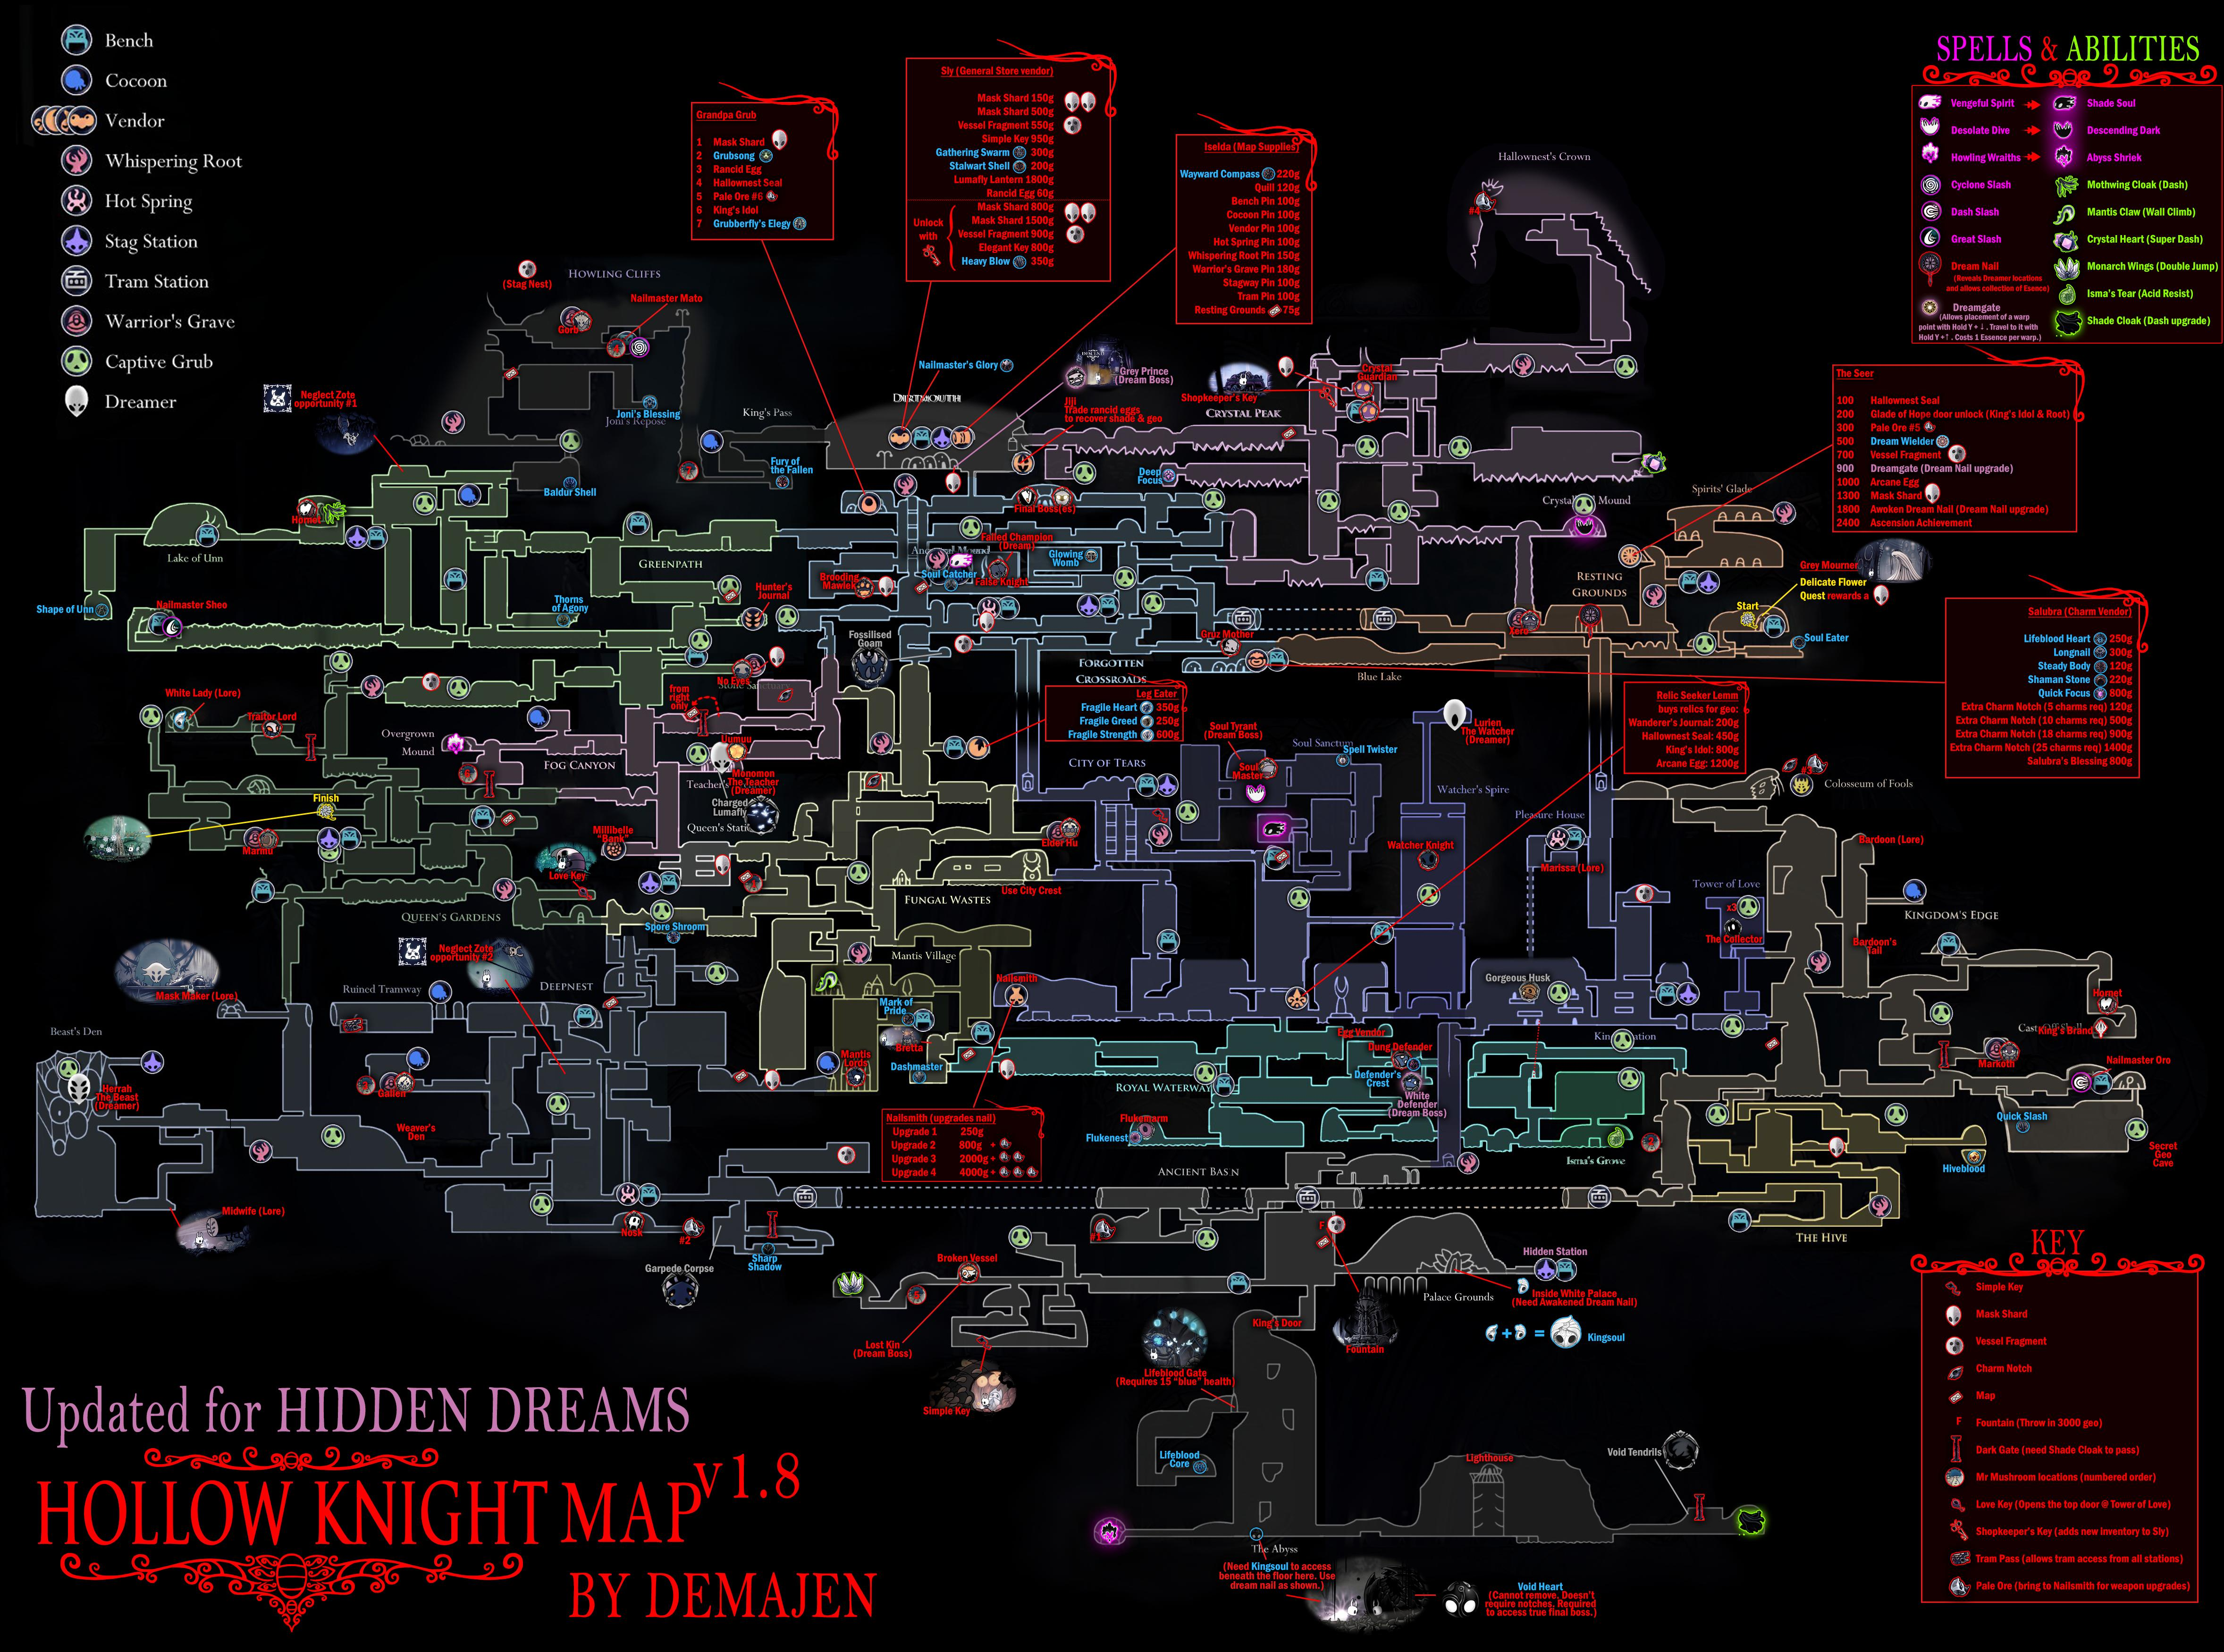 at t tower location map with 366 Hollow Knight on 5354 The Legend Of Zelda Breath Of The Wild Guide Locked Memories Quest Memory Locations as well Watch further World Map Equator in addition Salarpuria Gardenia Durgapur Kolkata Residential Property Floor together with Download Fortnite Hd Wallpapers.